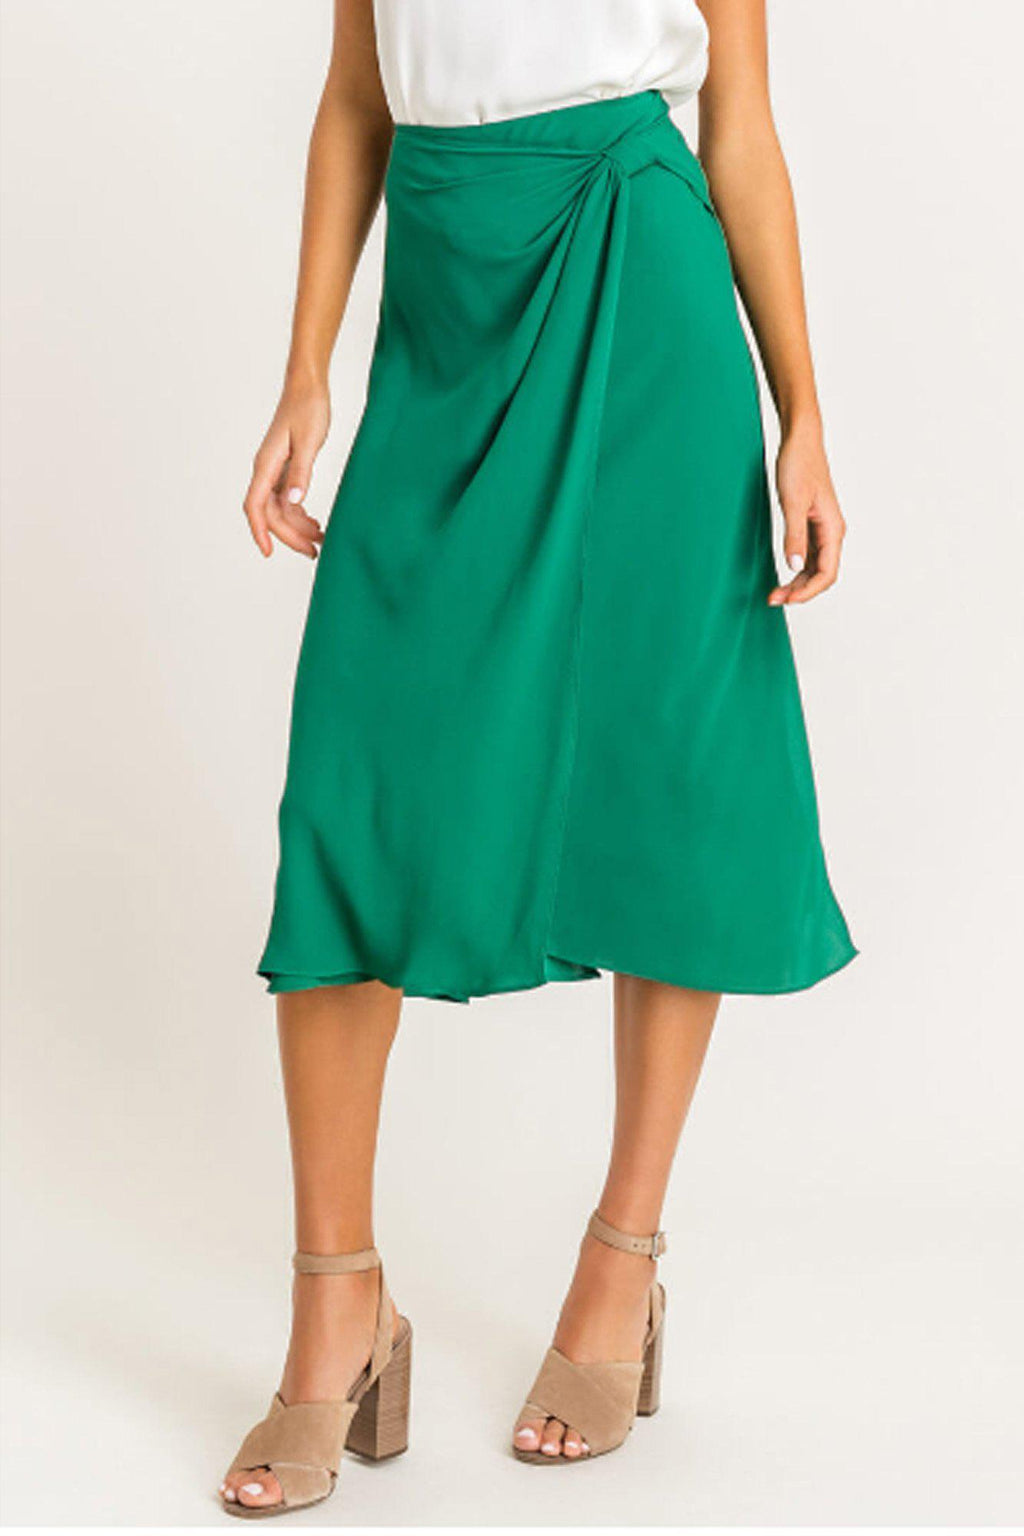 Pine Knot Midi Skirt - Gallery 512 Boutique